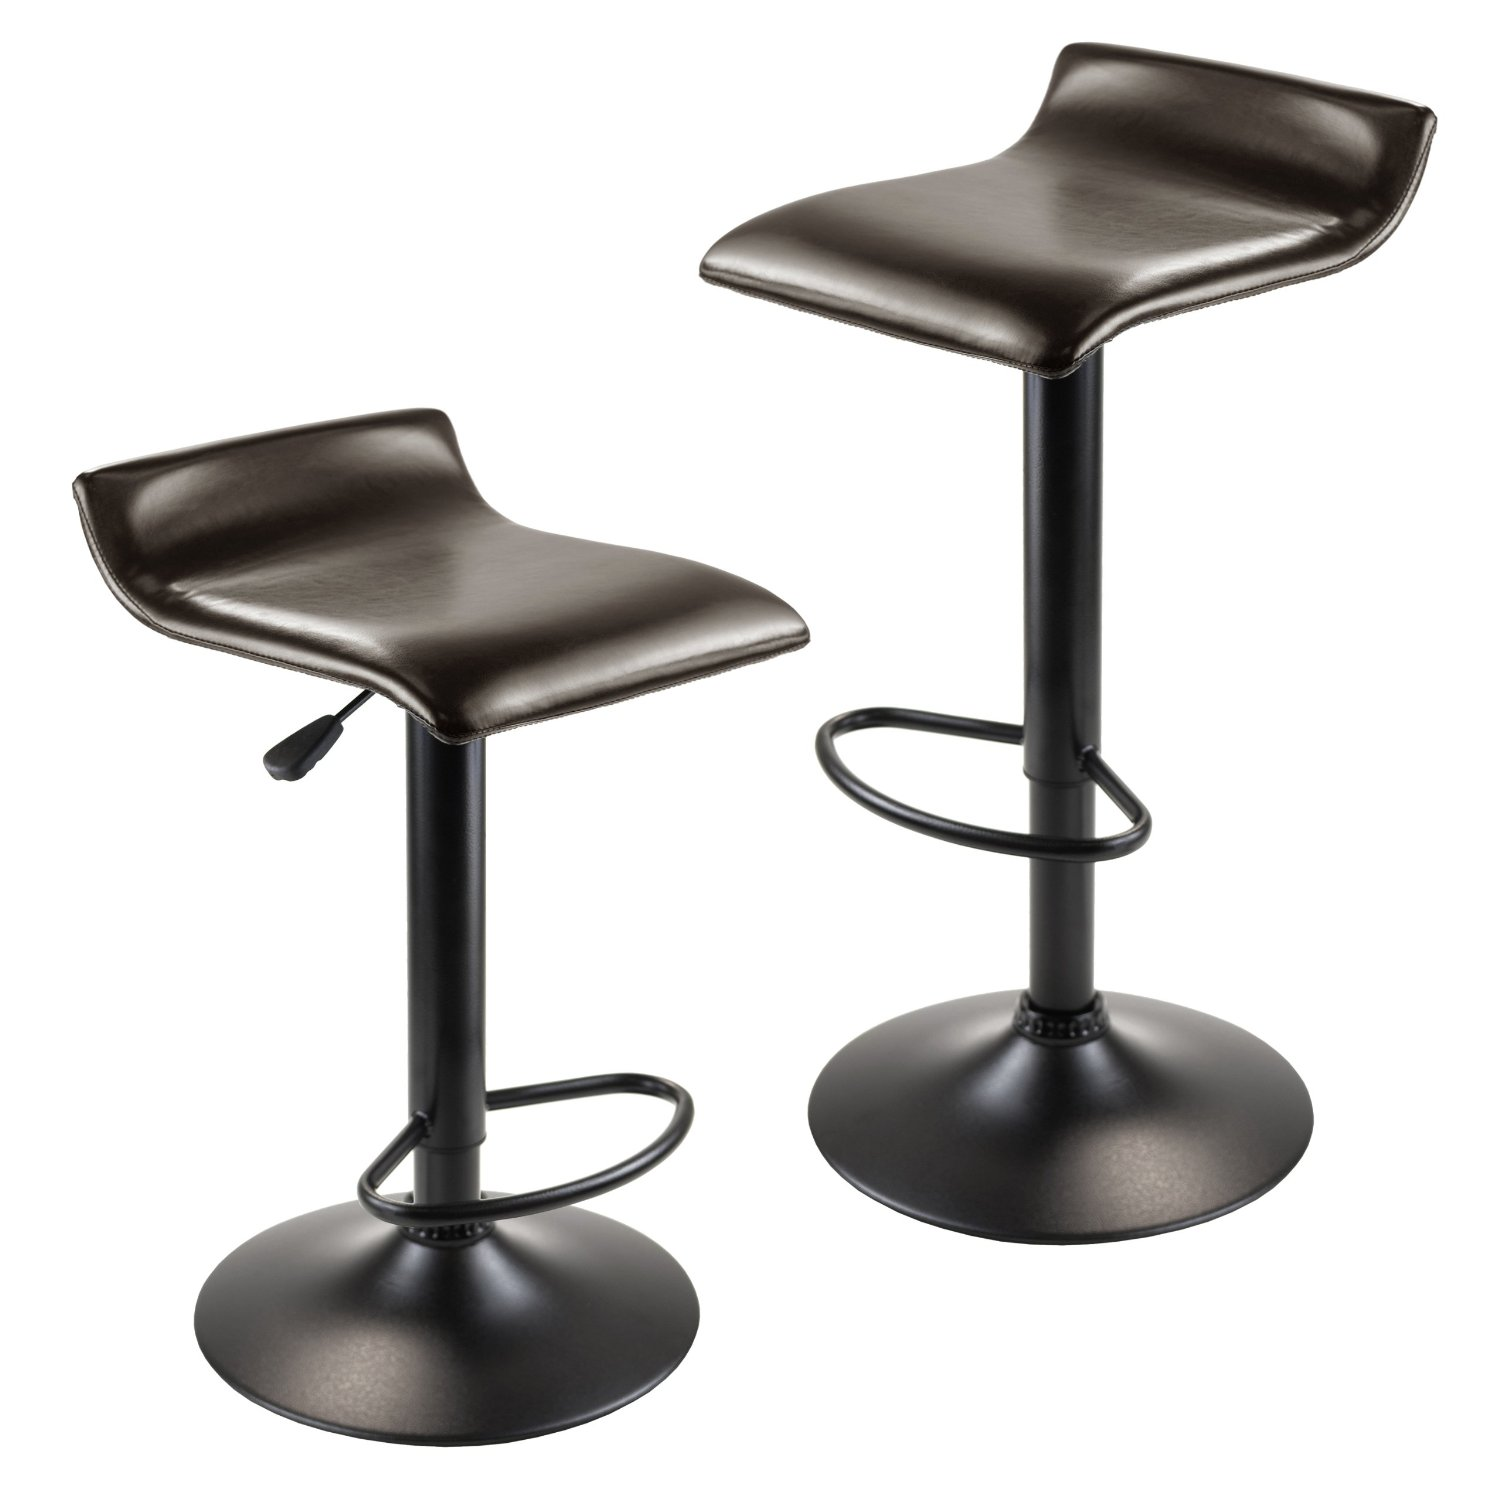 elegant swivel airlift cymax bar stools for home furniture ideas